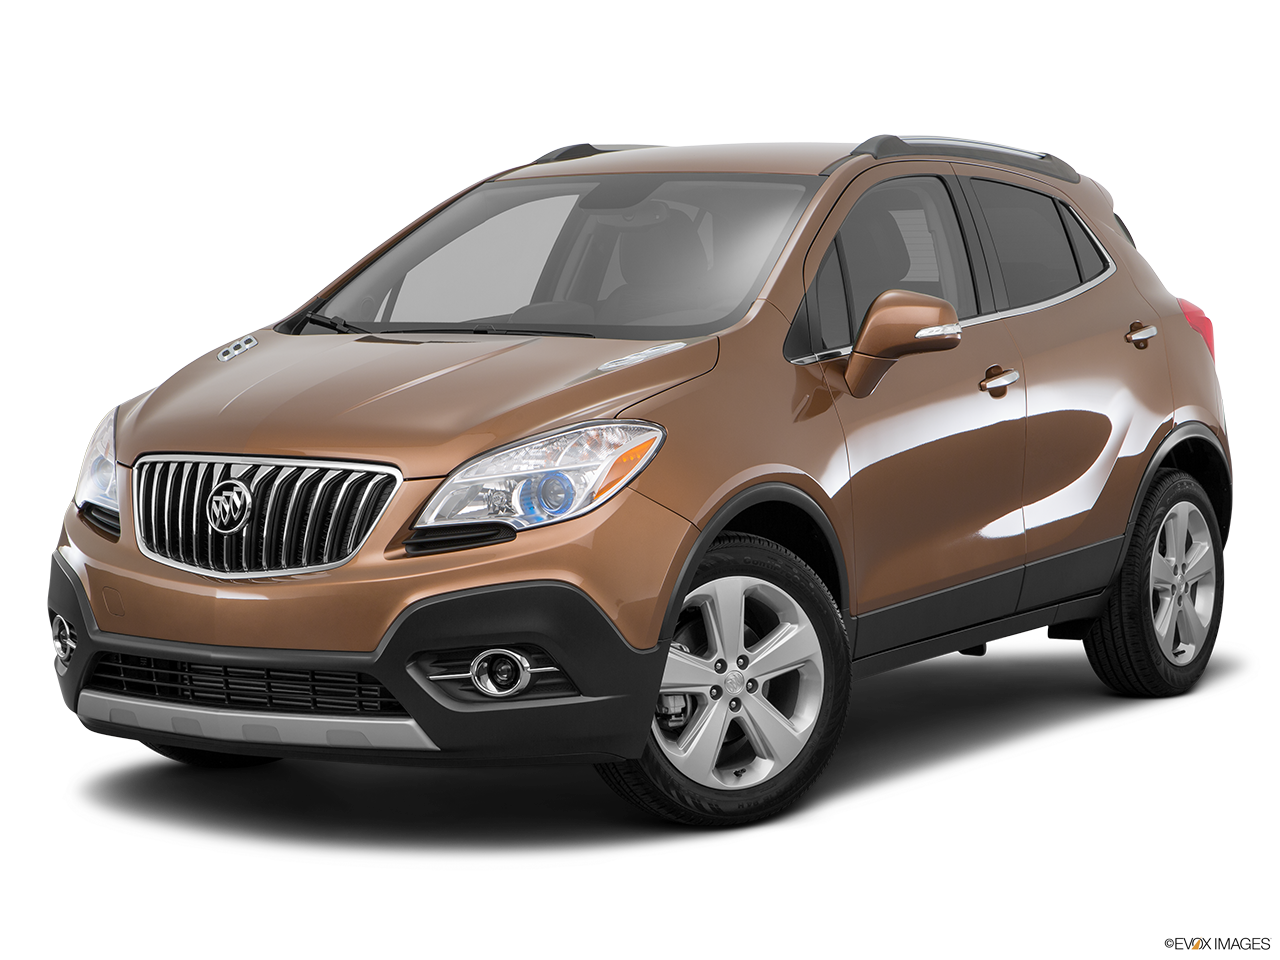 2016 buick encore clipart clipart free library 2016 Buick Encore dealer in Orange County | Hardin Buick GMC clipart free library